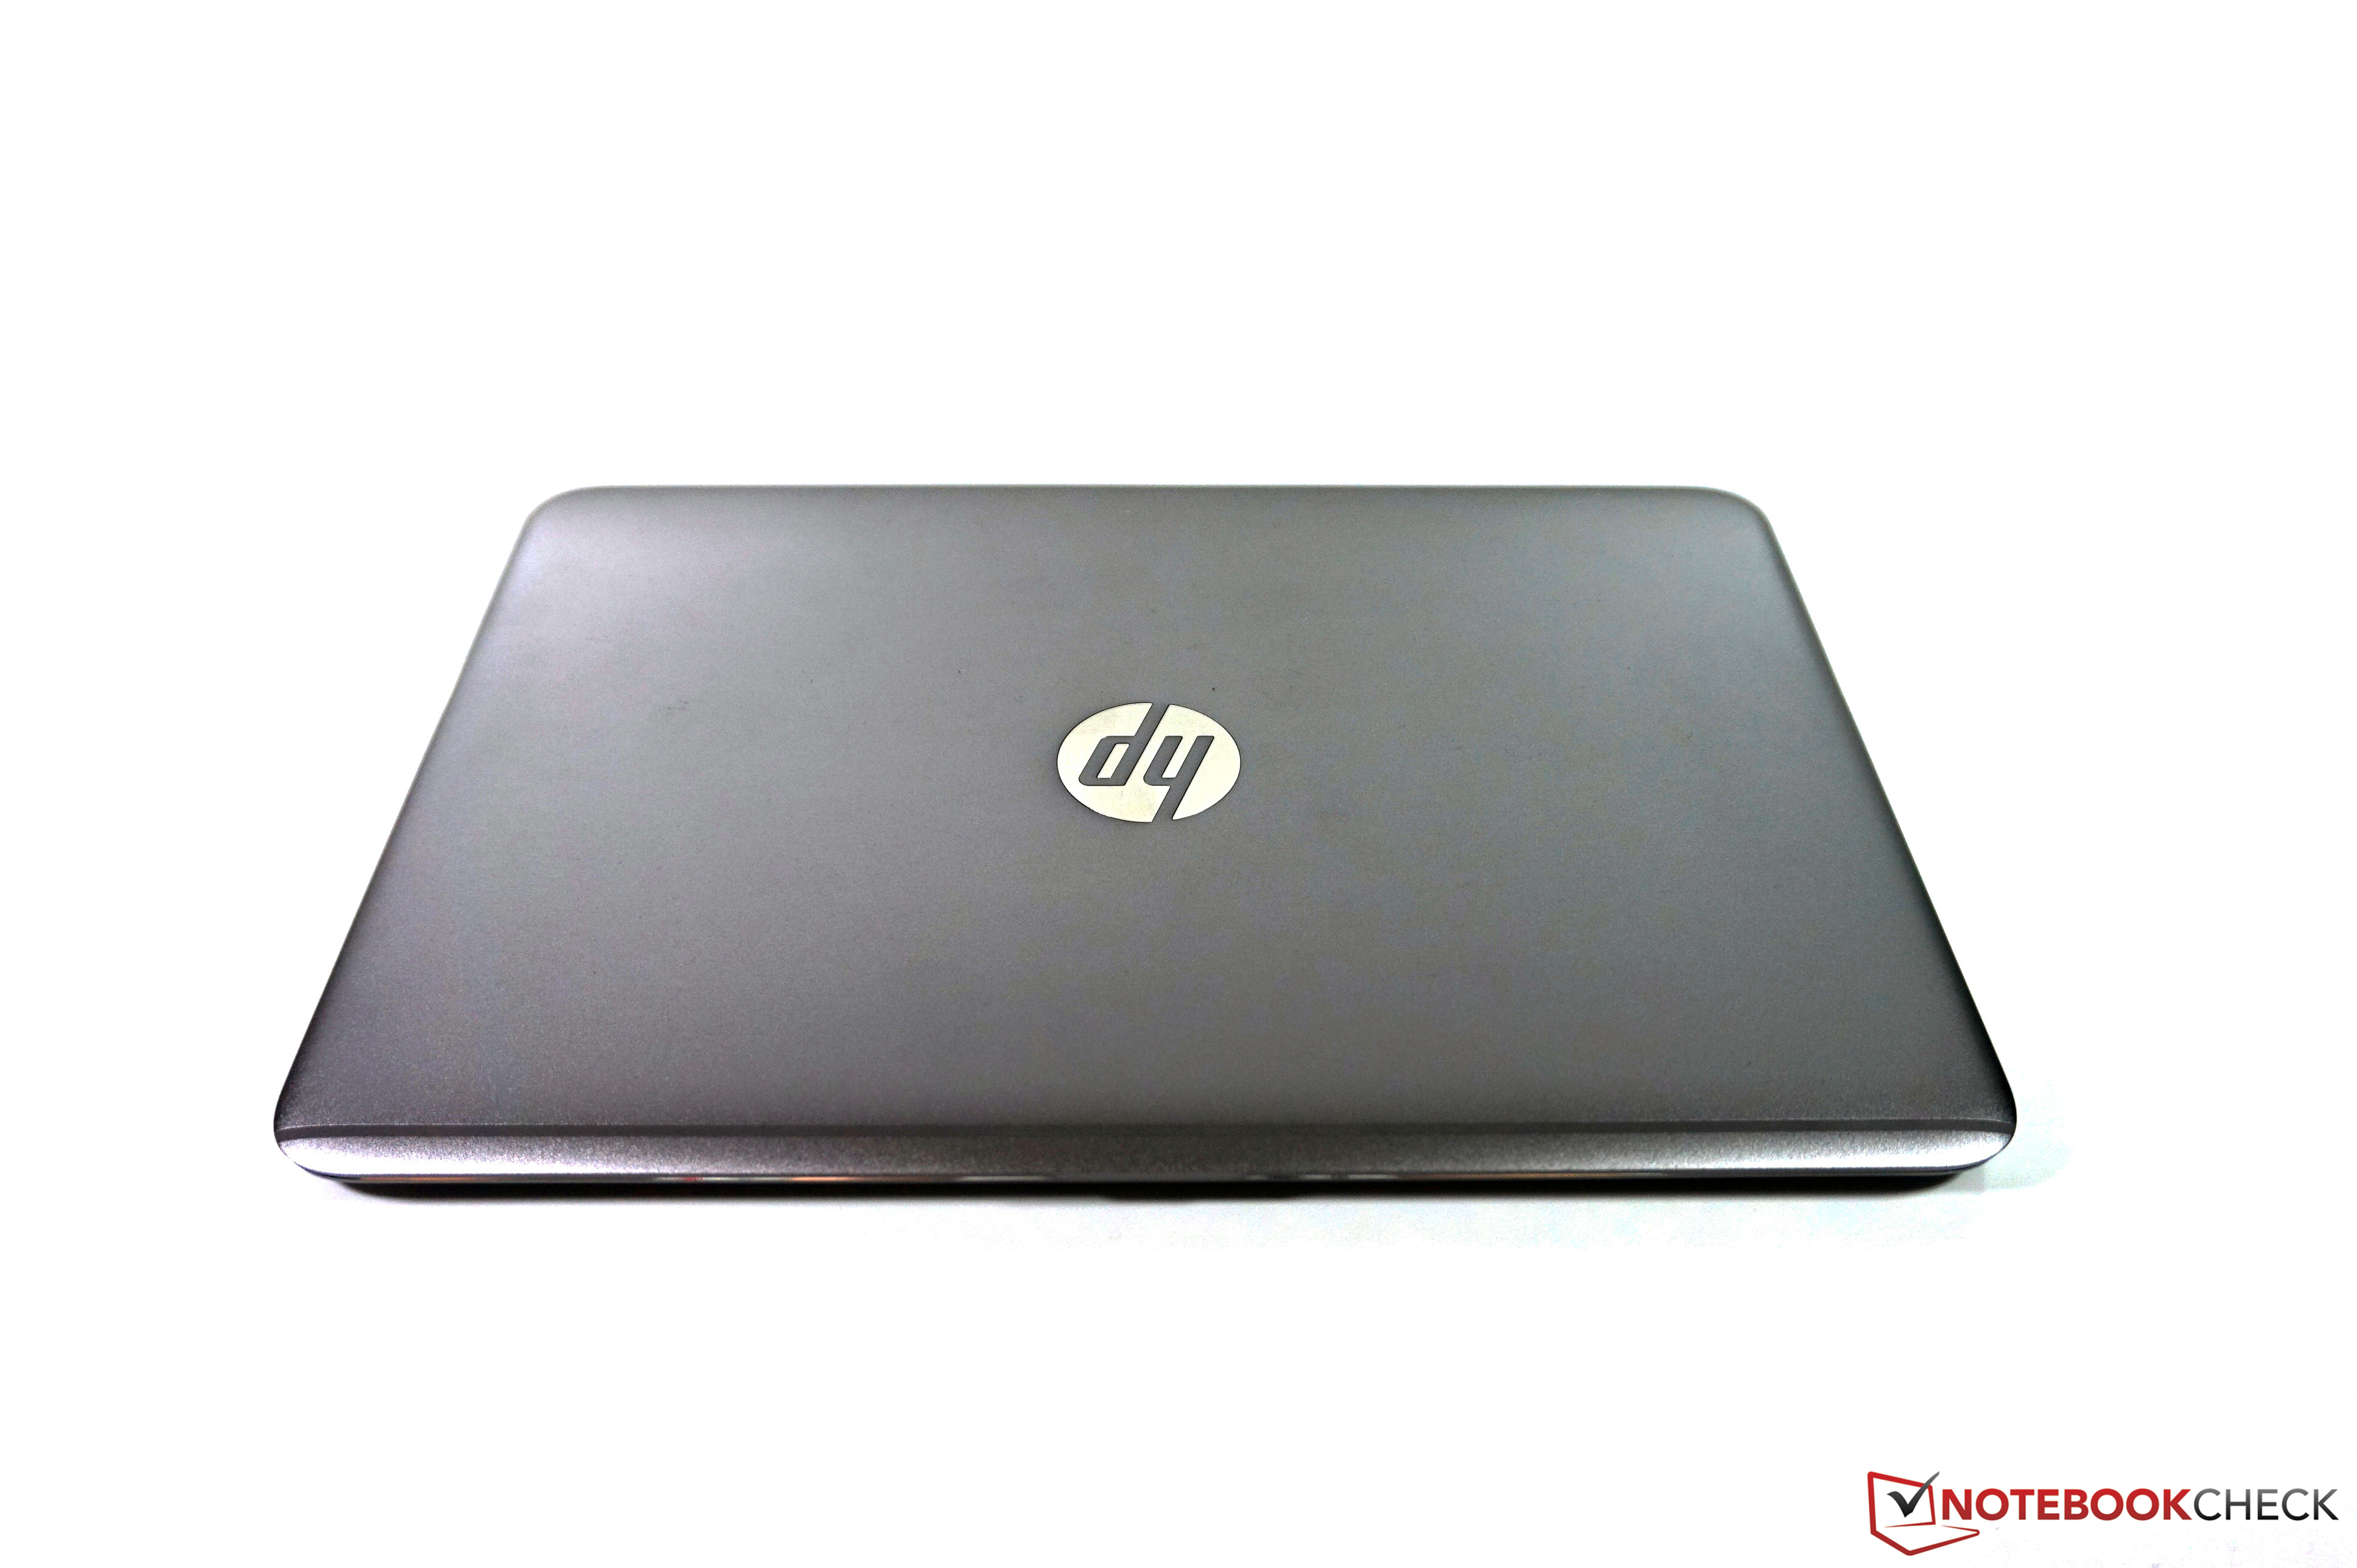 HP EliteBook Folio 1040 G3 Notebook Review - NotebookCheck